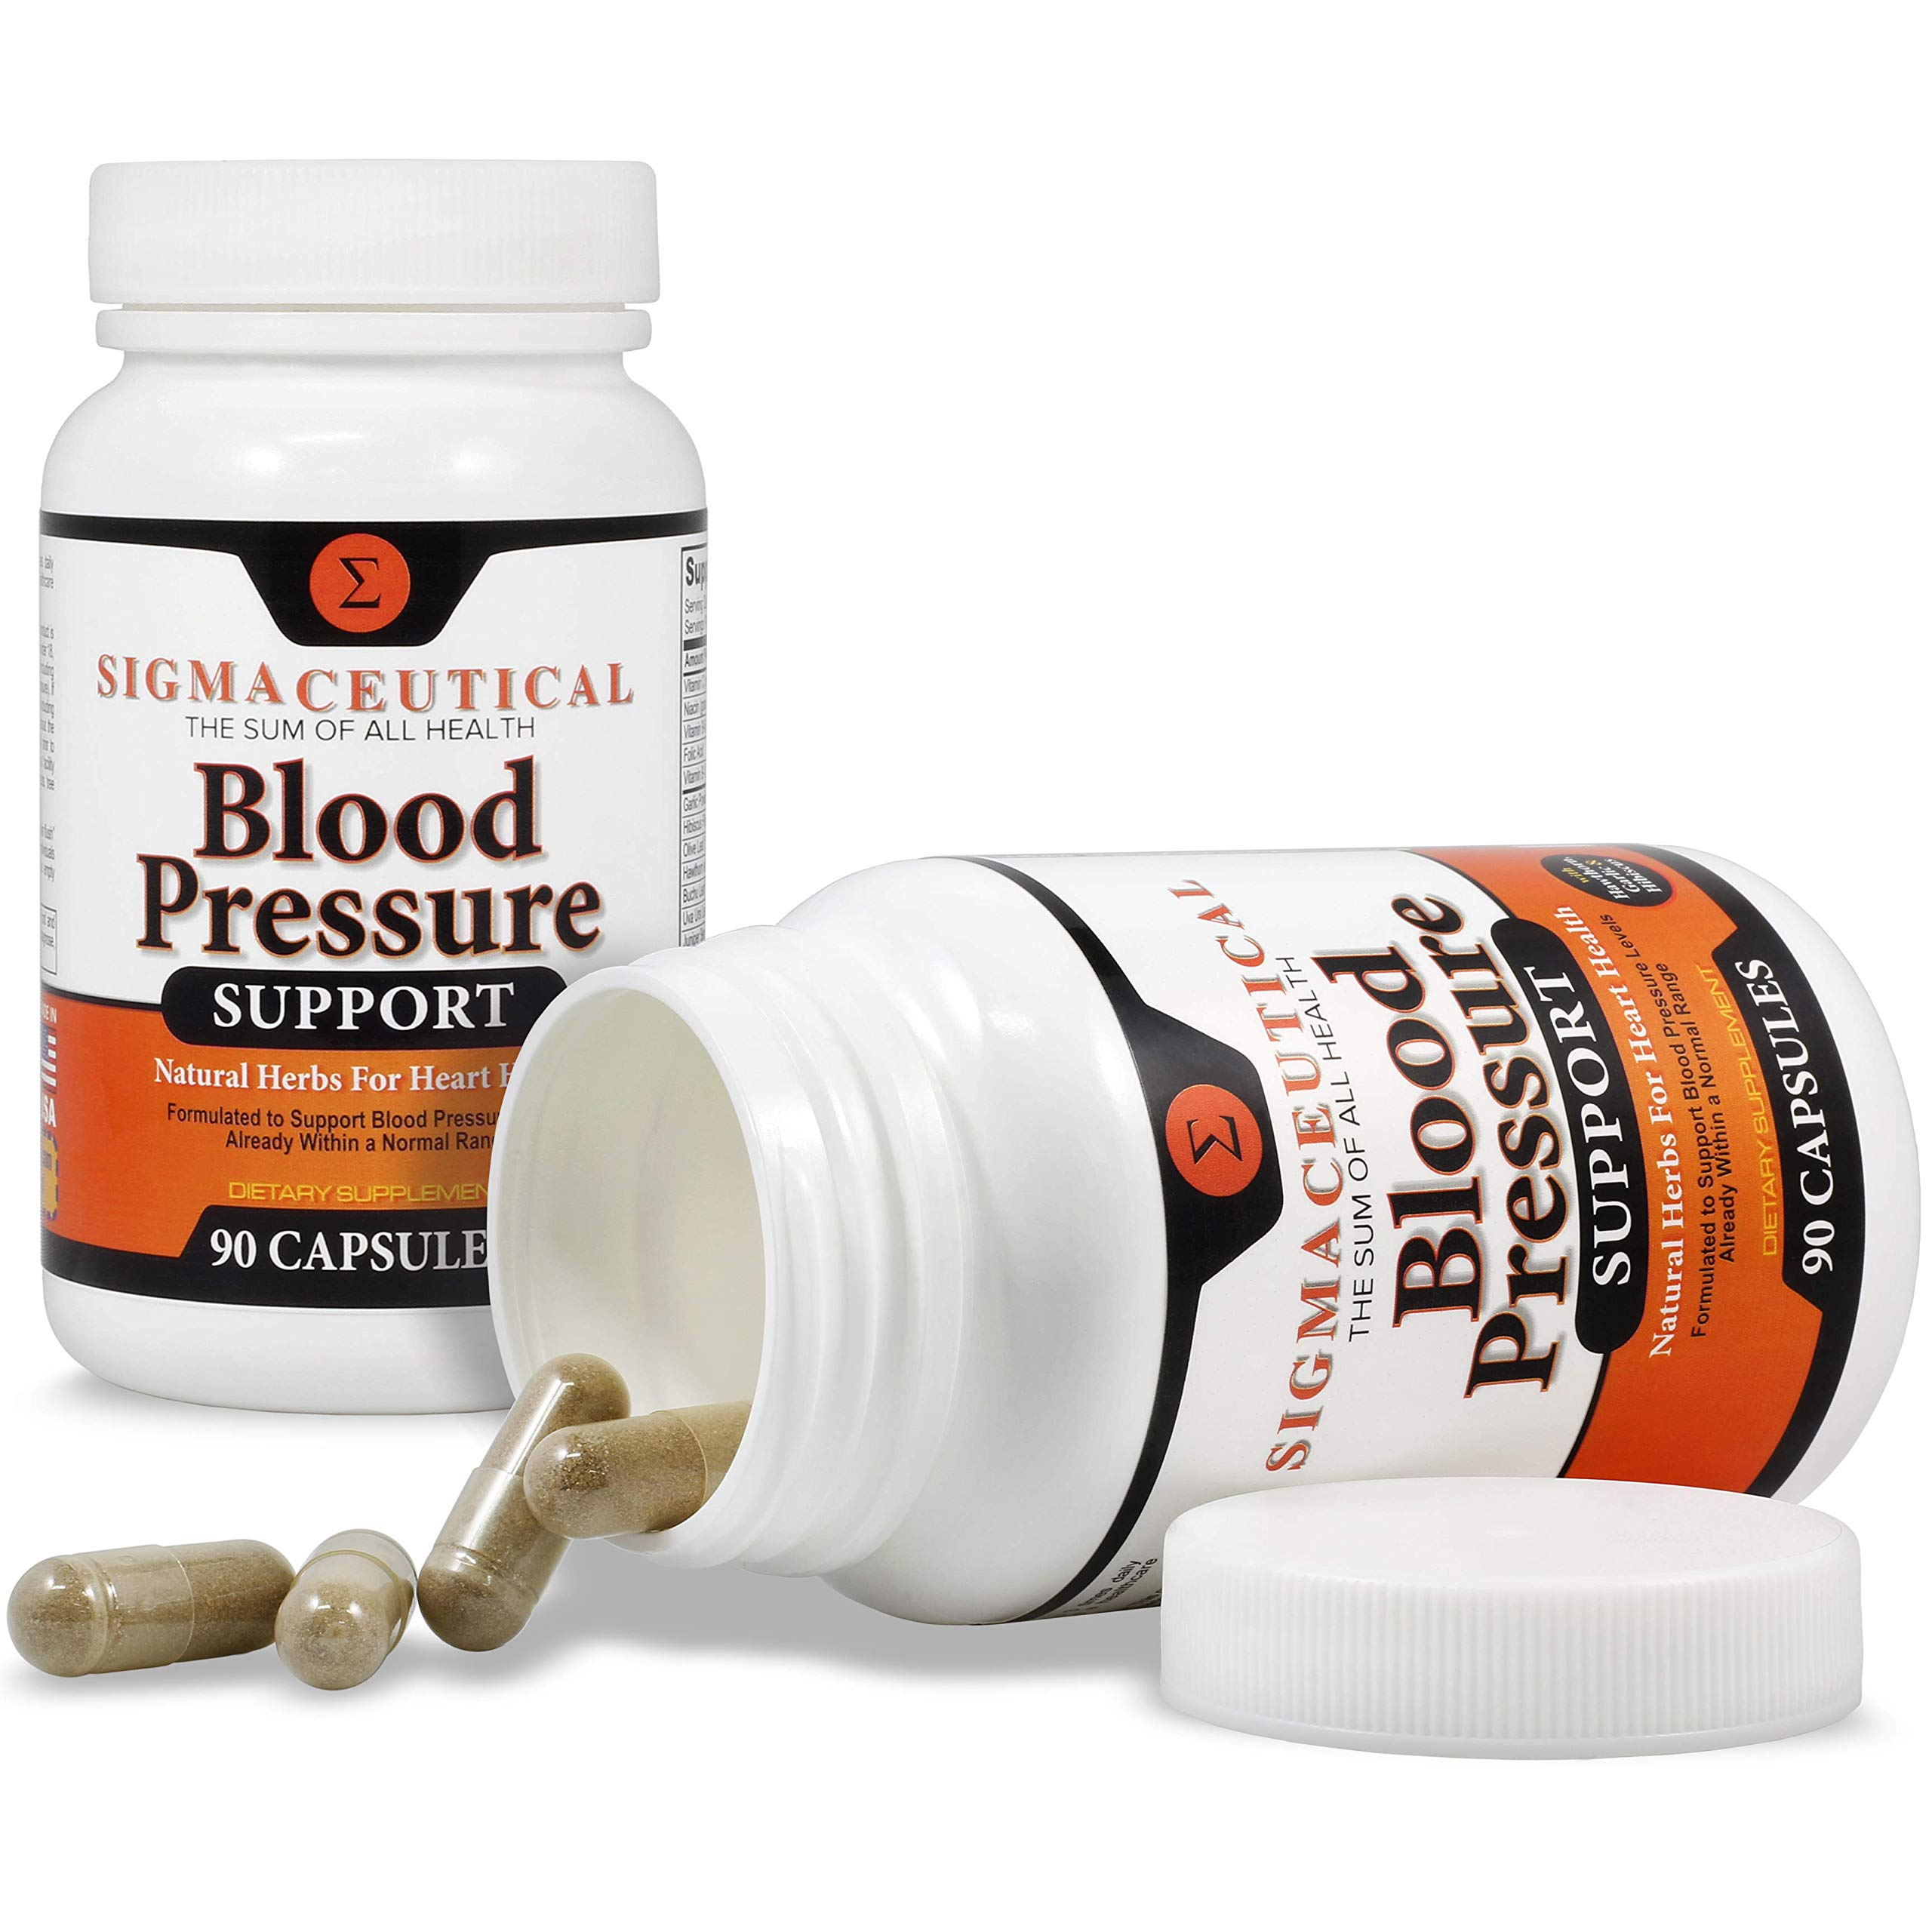 5 Pack of Premium Blood Pressure Support Formula - High Blood Pressure Supplement w/Vitamins, Hawthorn Extract, Olive Leaf, Garlic Extract & Hibiscus Supplement - 90 Capsules Each by Sigmaceutical (Image #5)